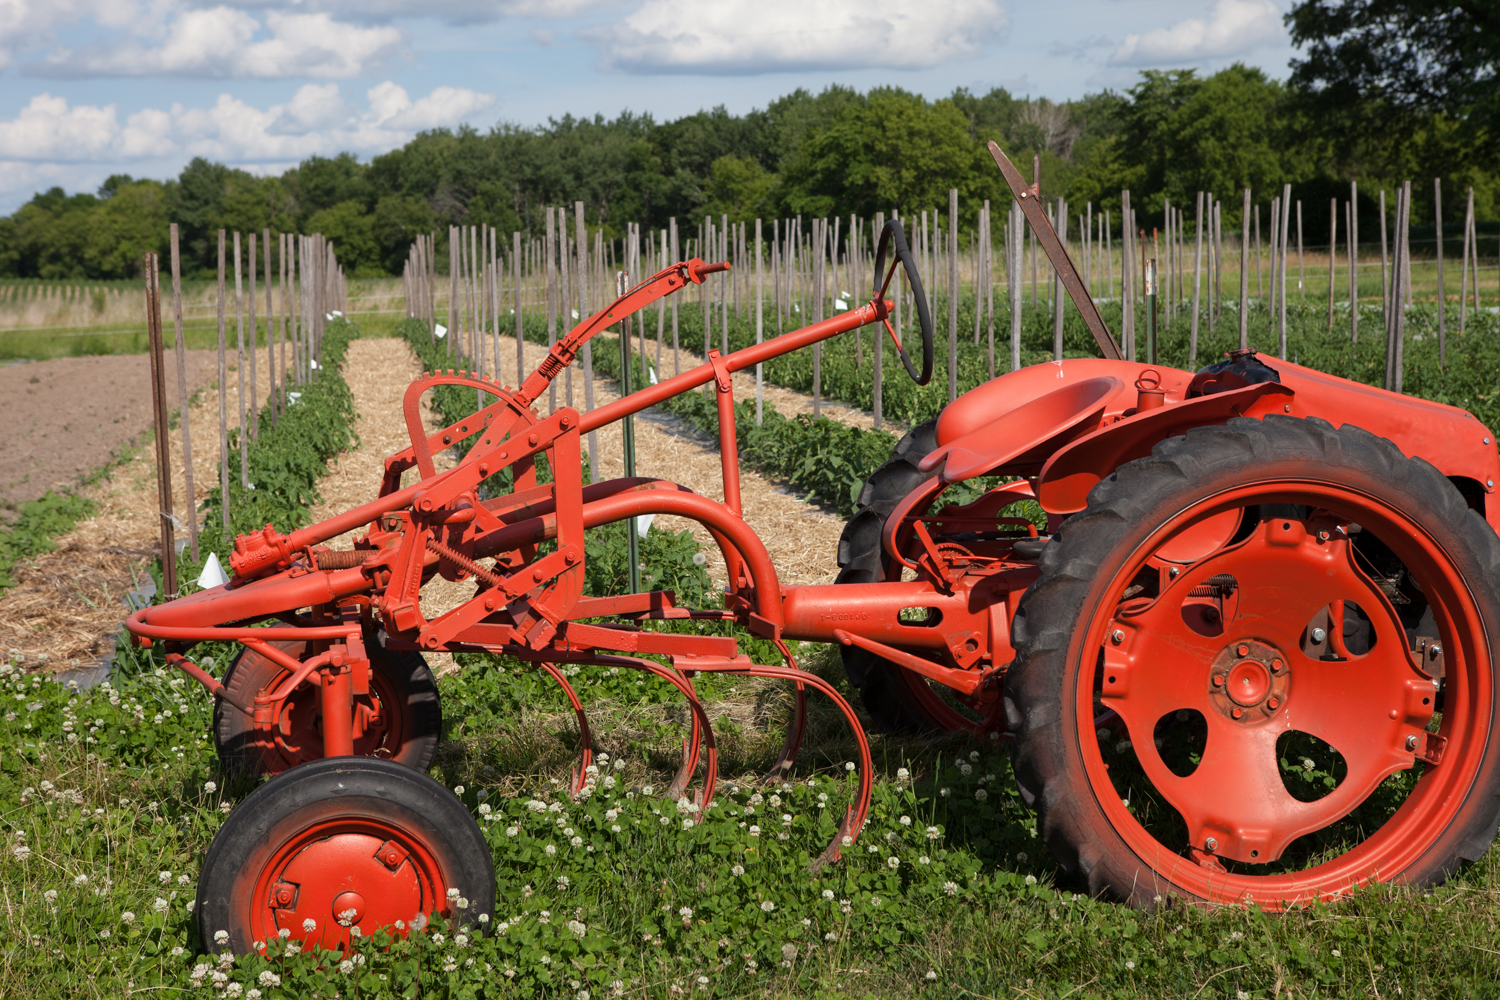 The G-Tractor